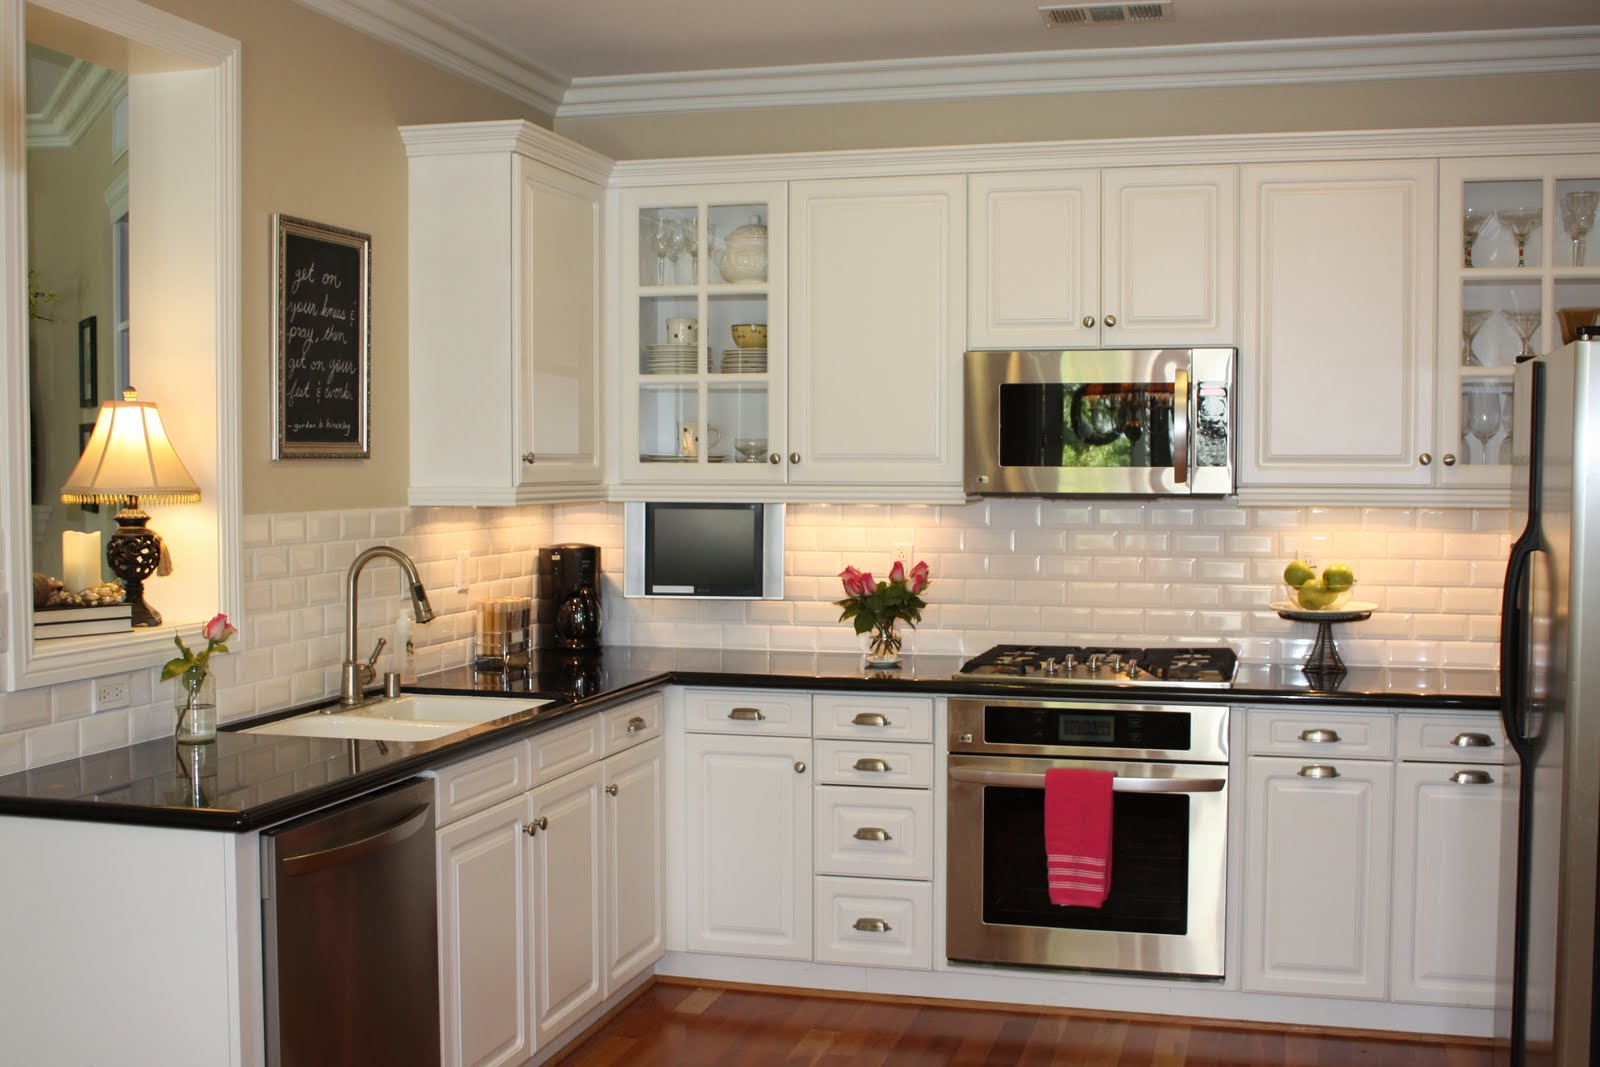 Top 5 ideas of wall decor for kitchen midcityeast for Black and white painted kitchen cabinets